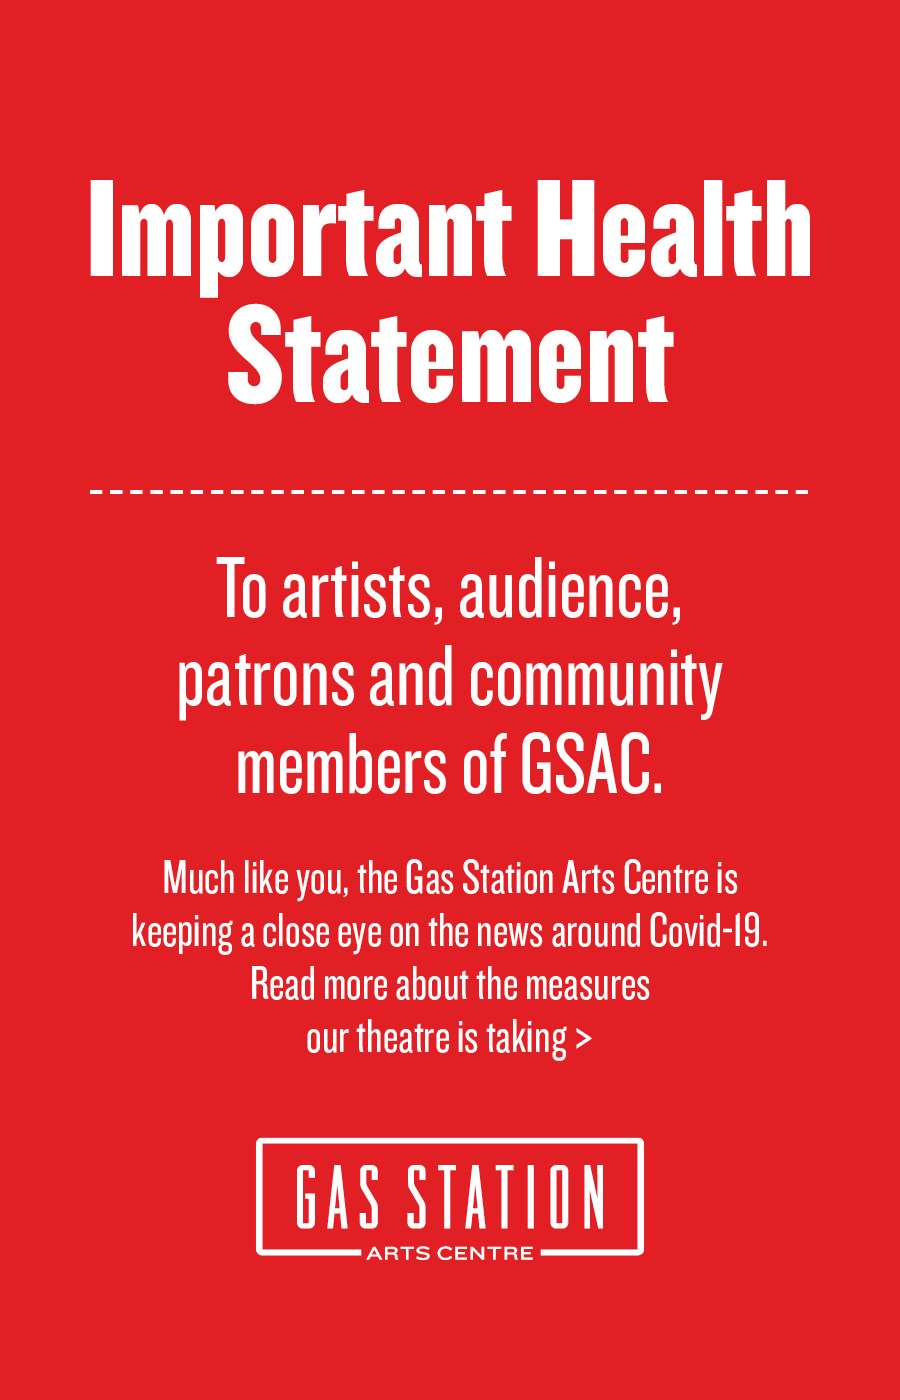 GSAC Health Statement